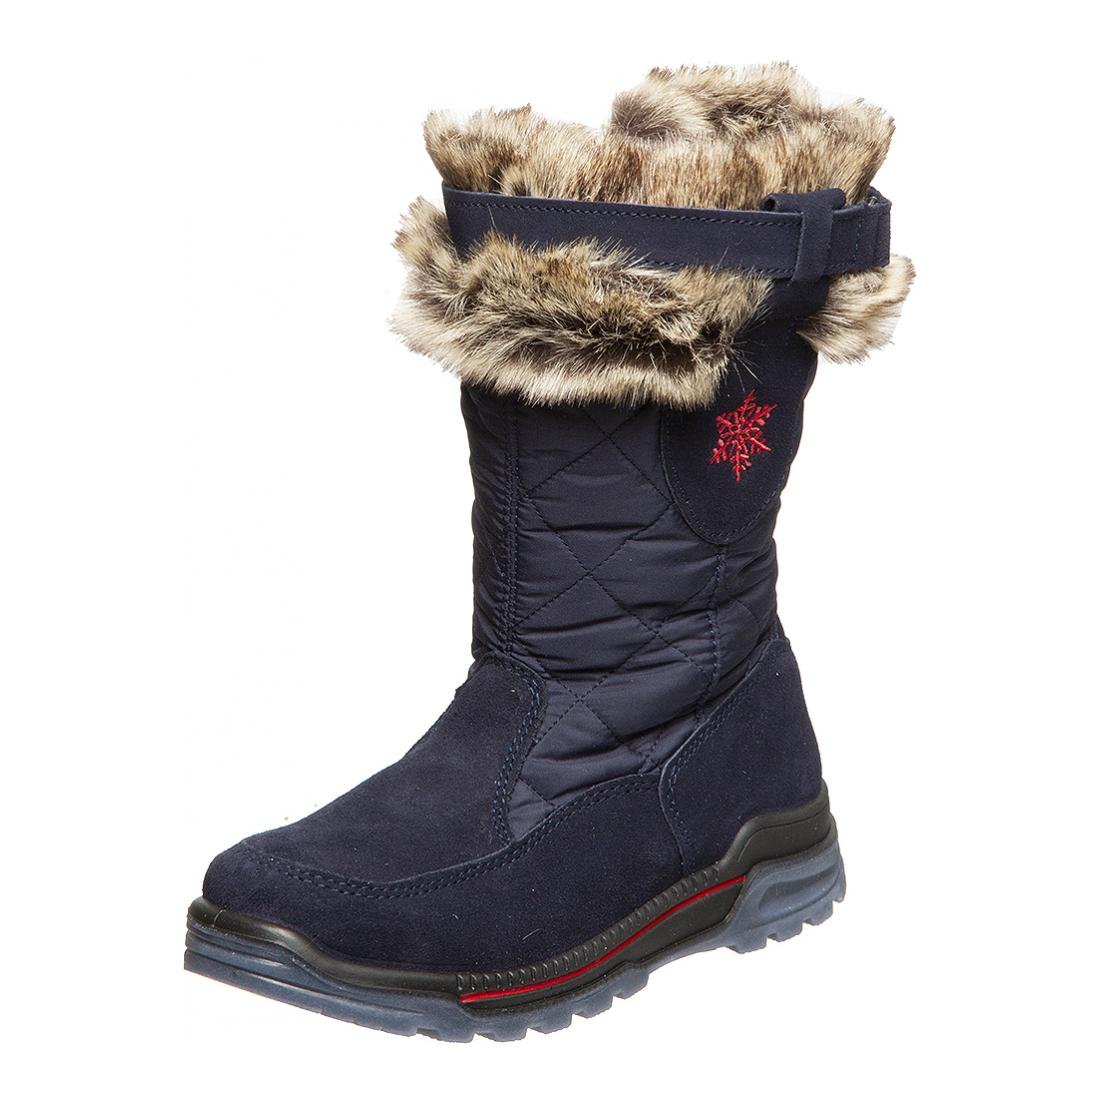 Orion Winterstiefel